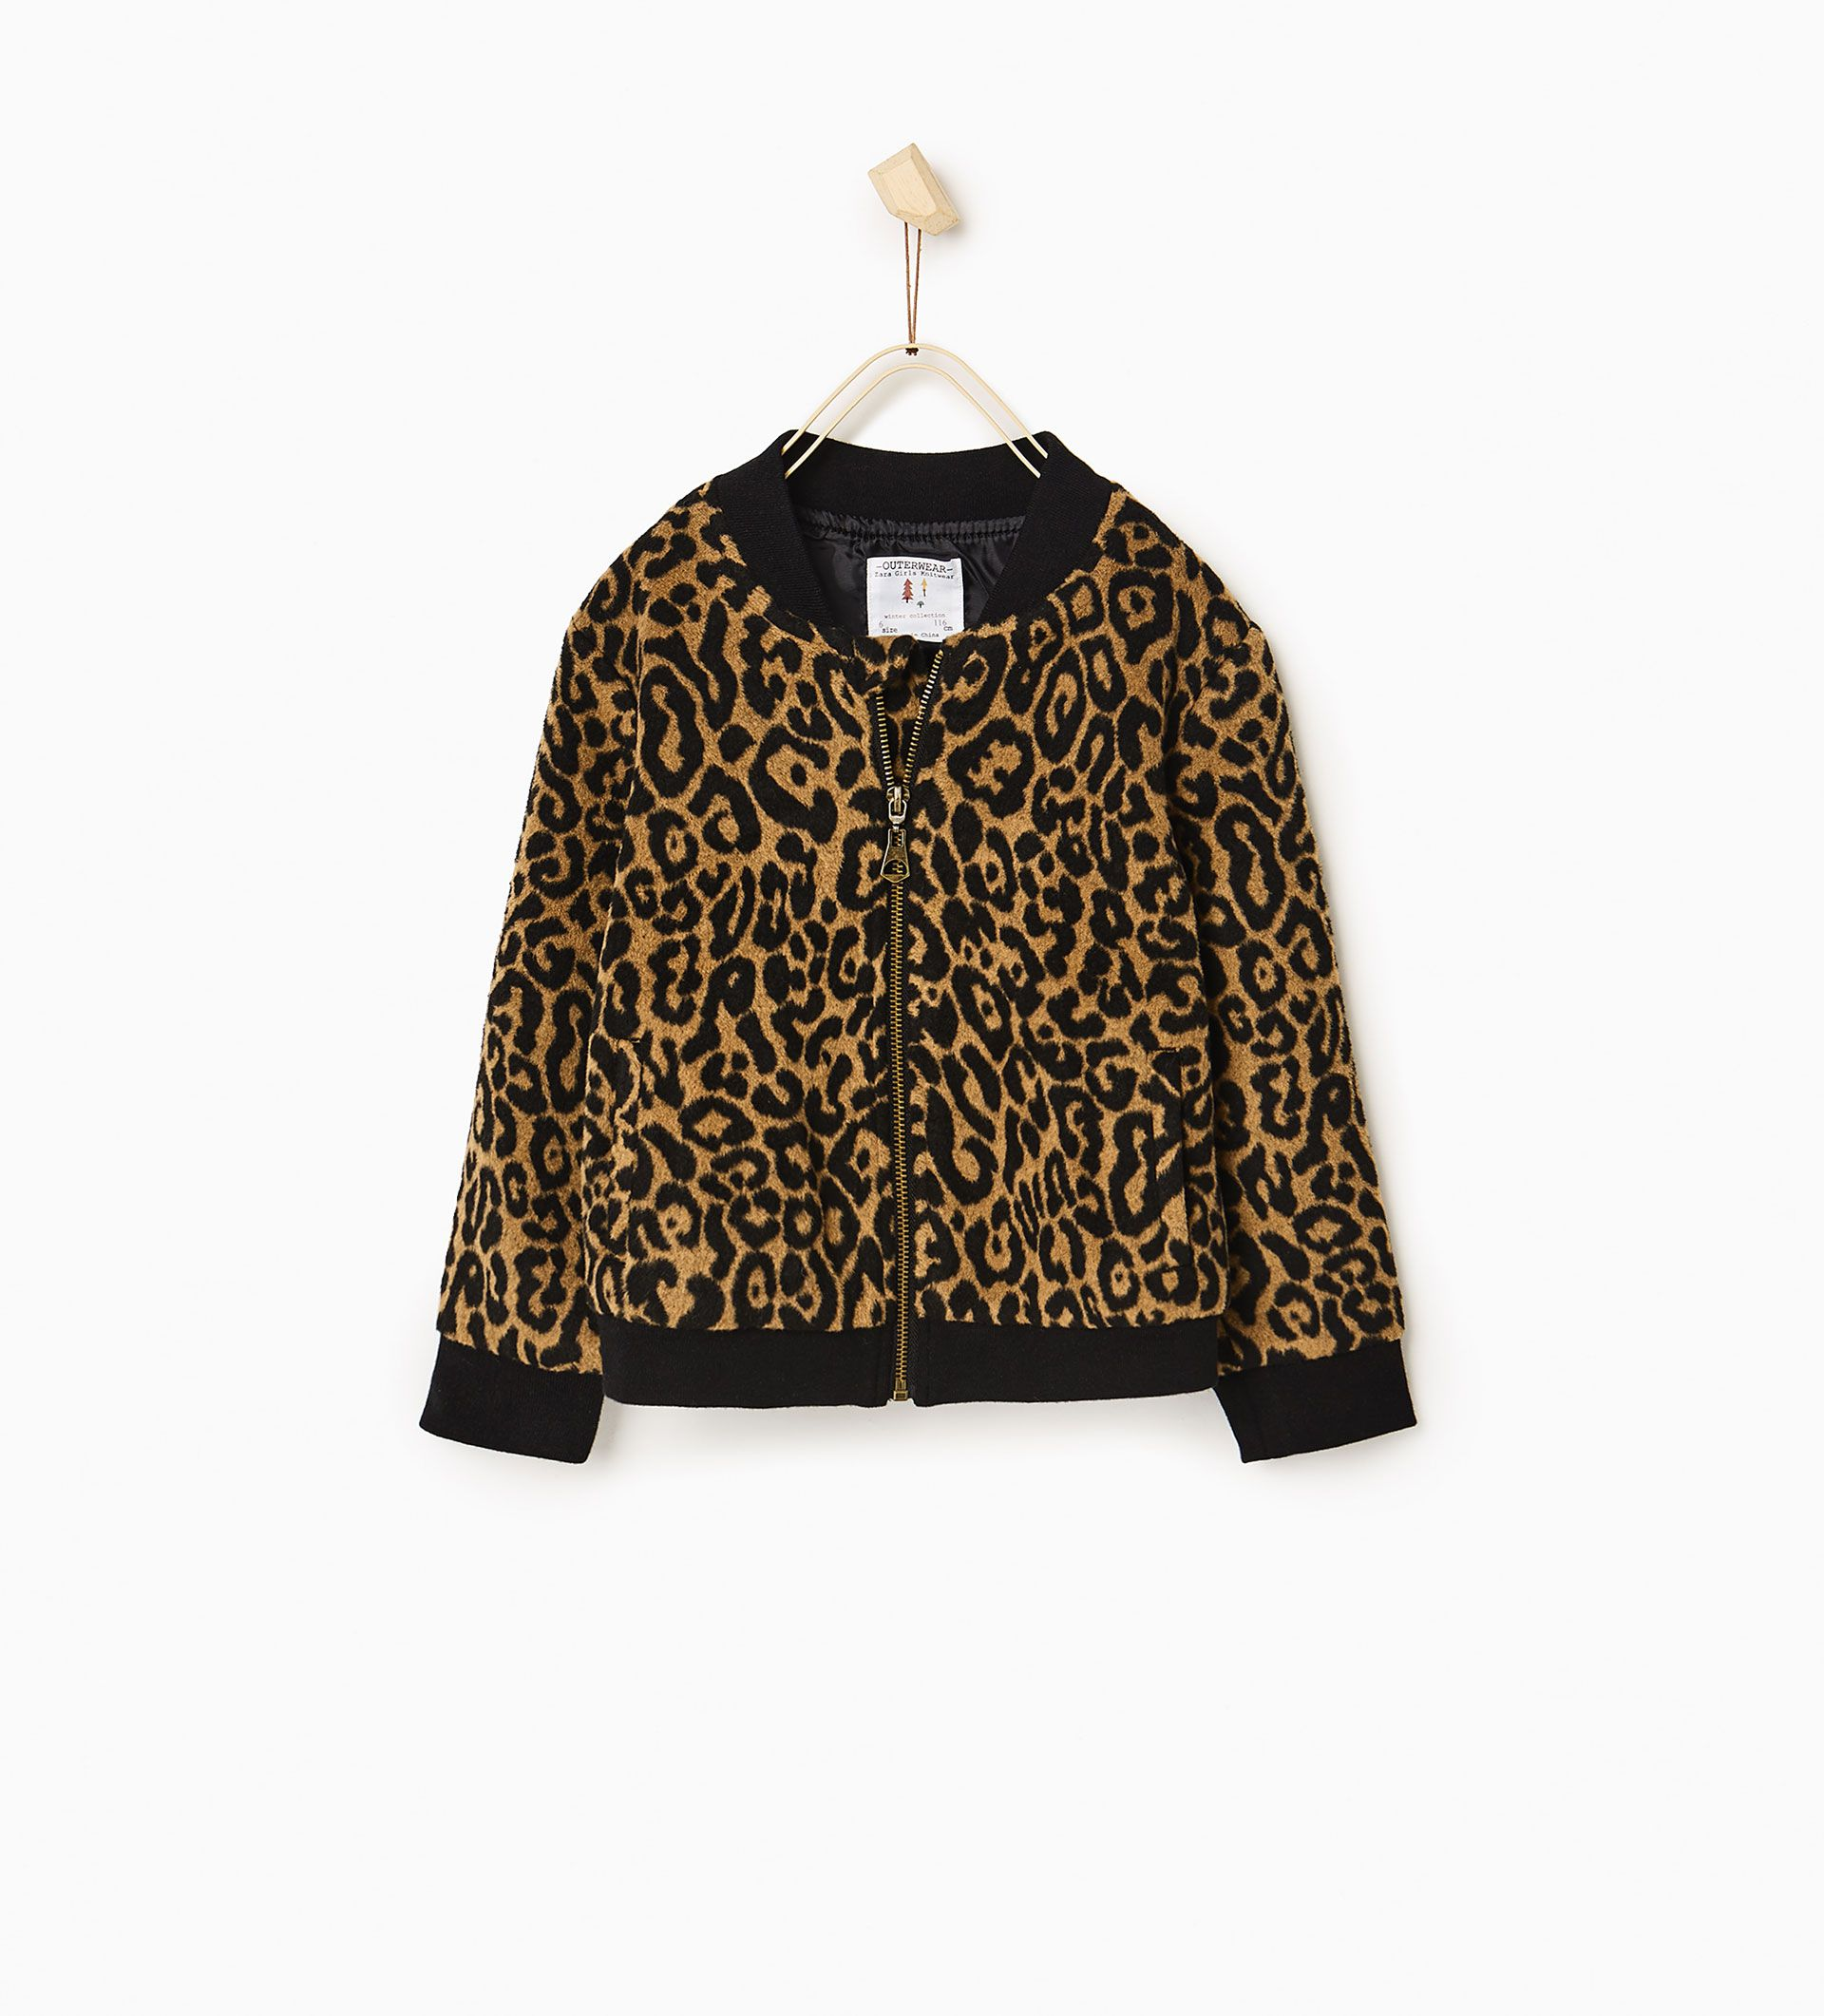 Image 1 of Leopard bomber jacket from Zara Clothes